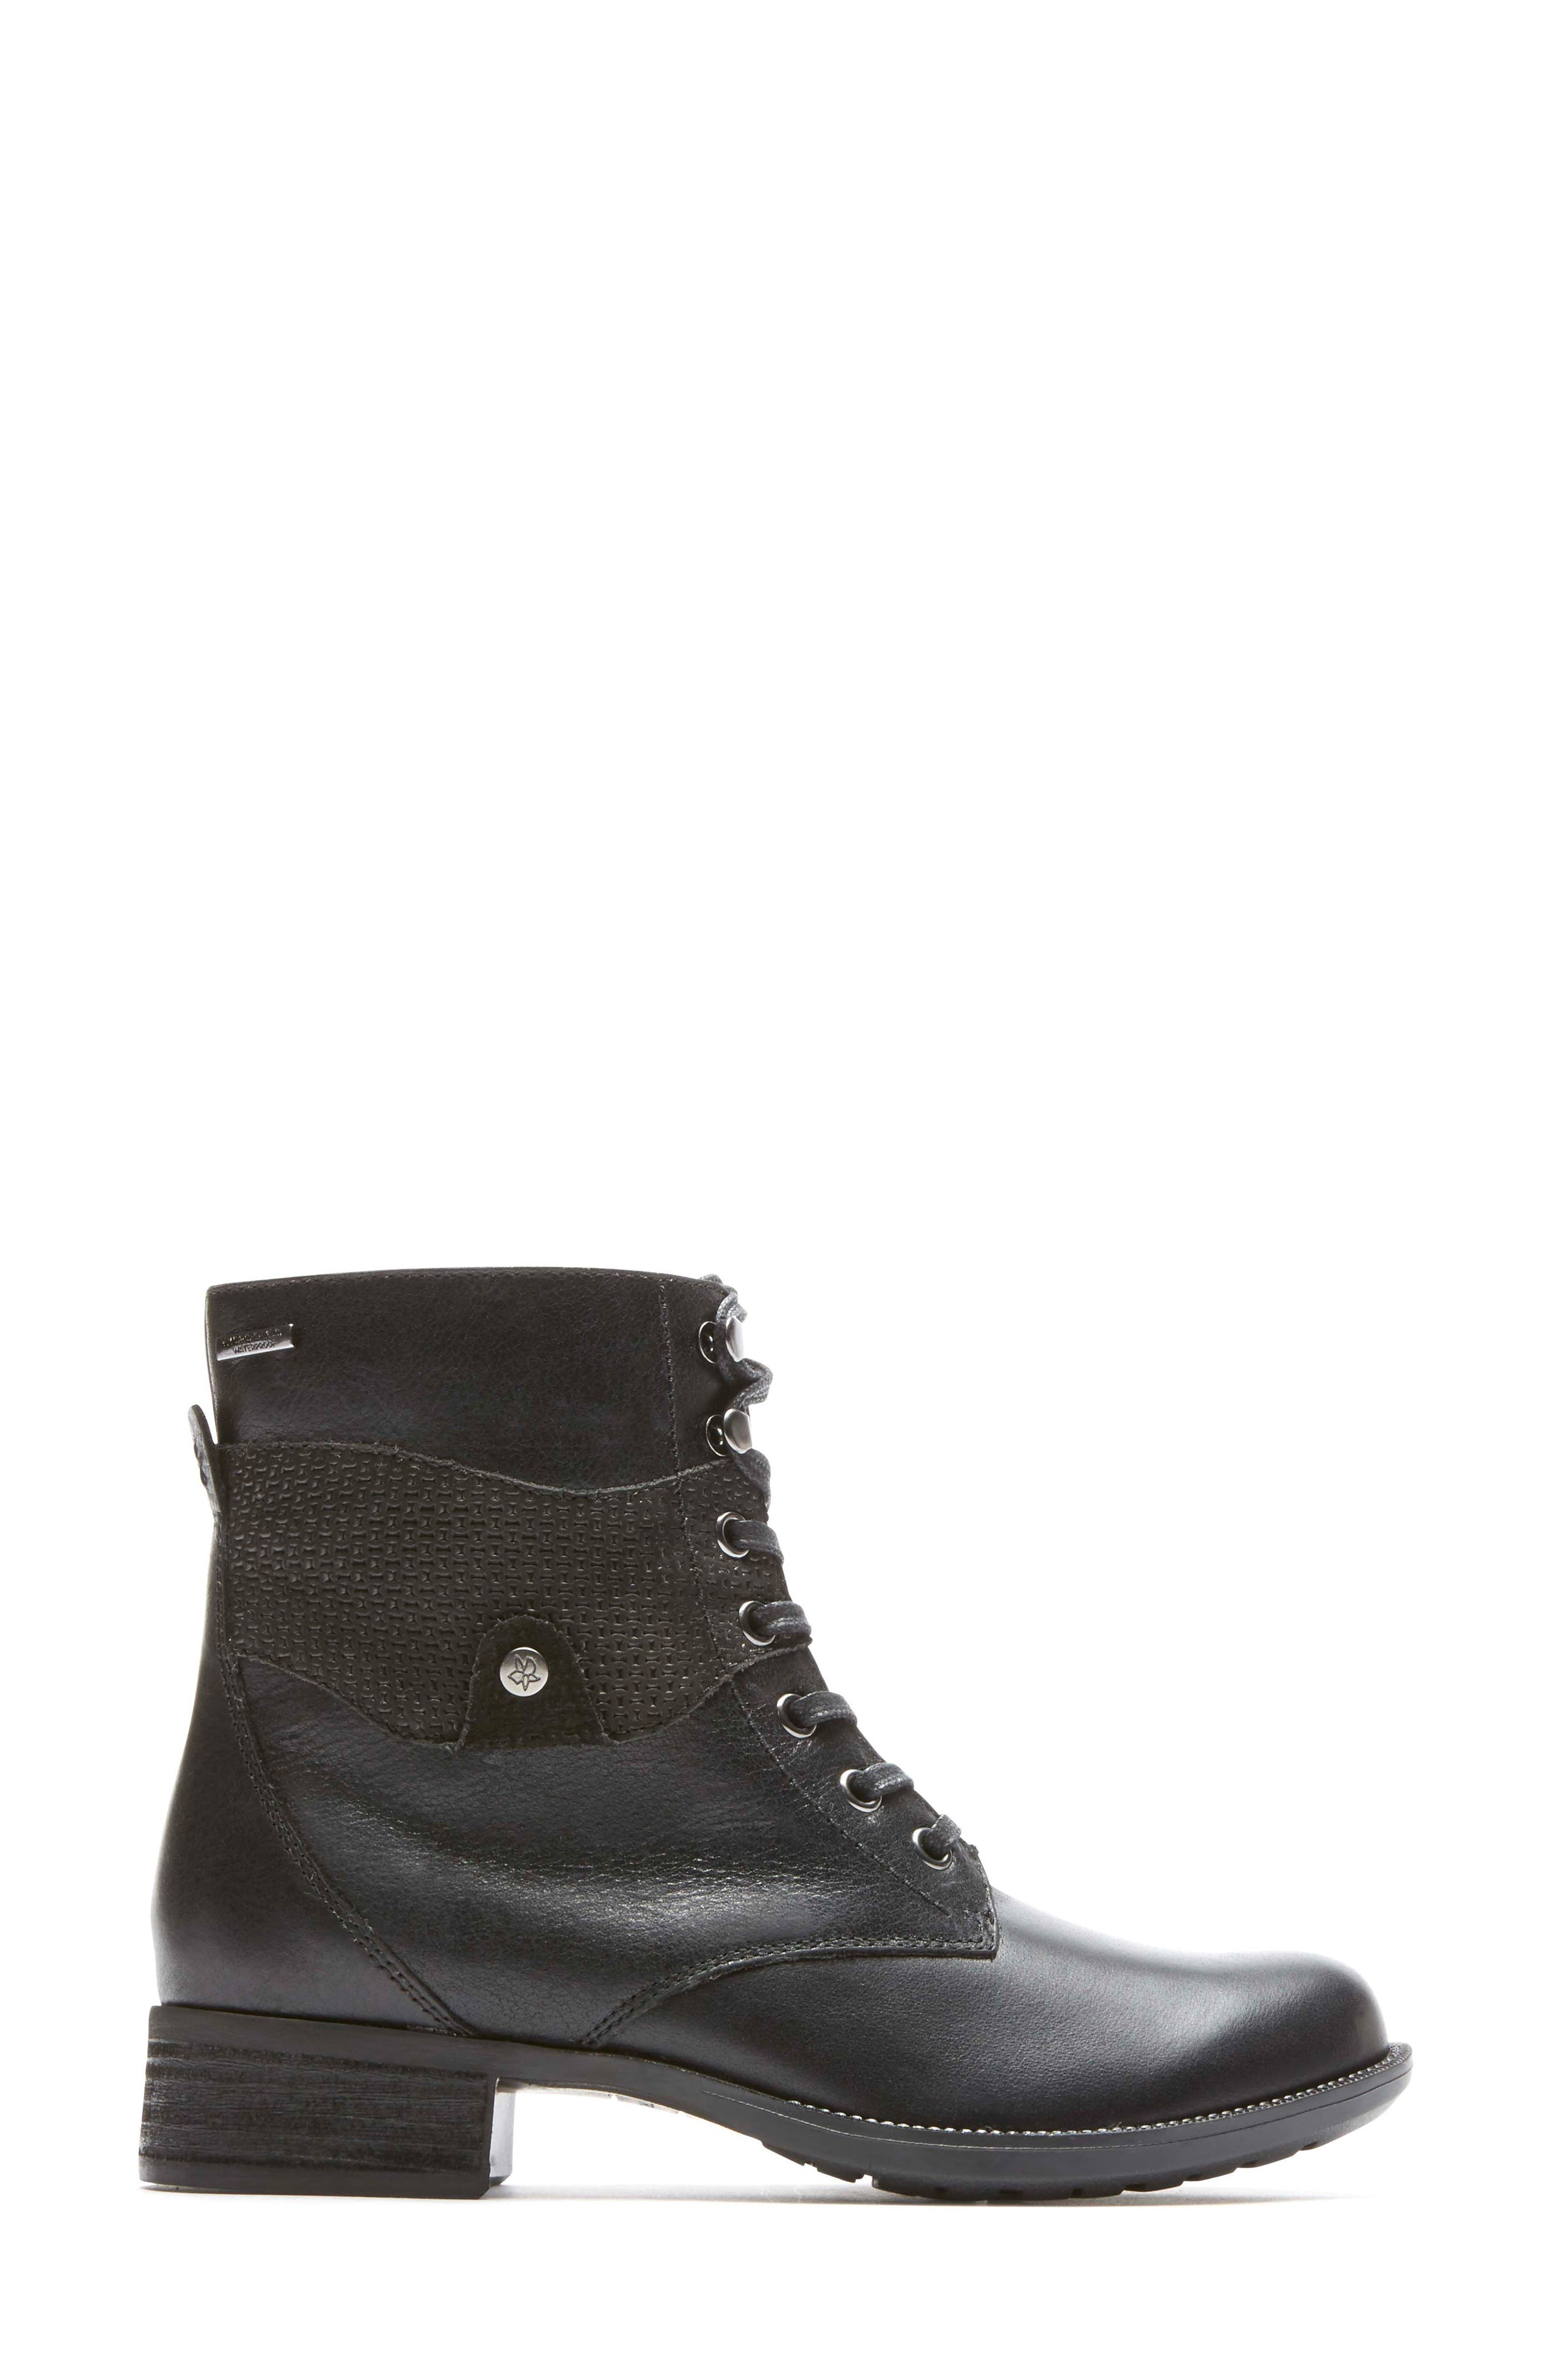 Copley Waterproof Combat Boot,                             Alternate thumbnail 3, color,                             Black Leather